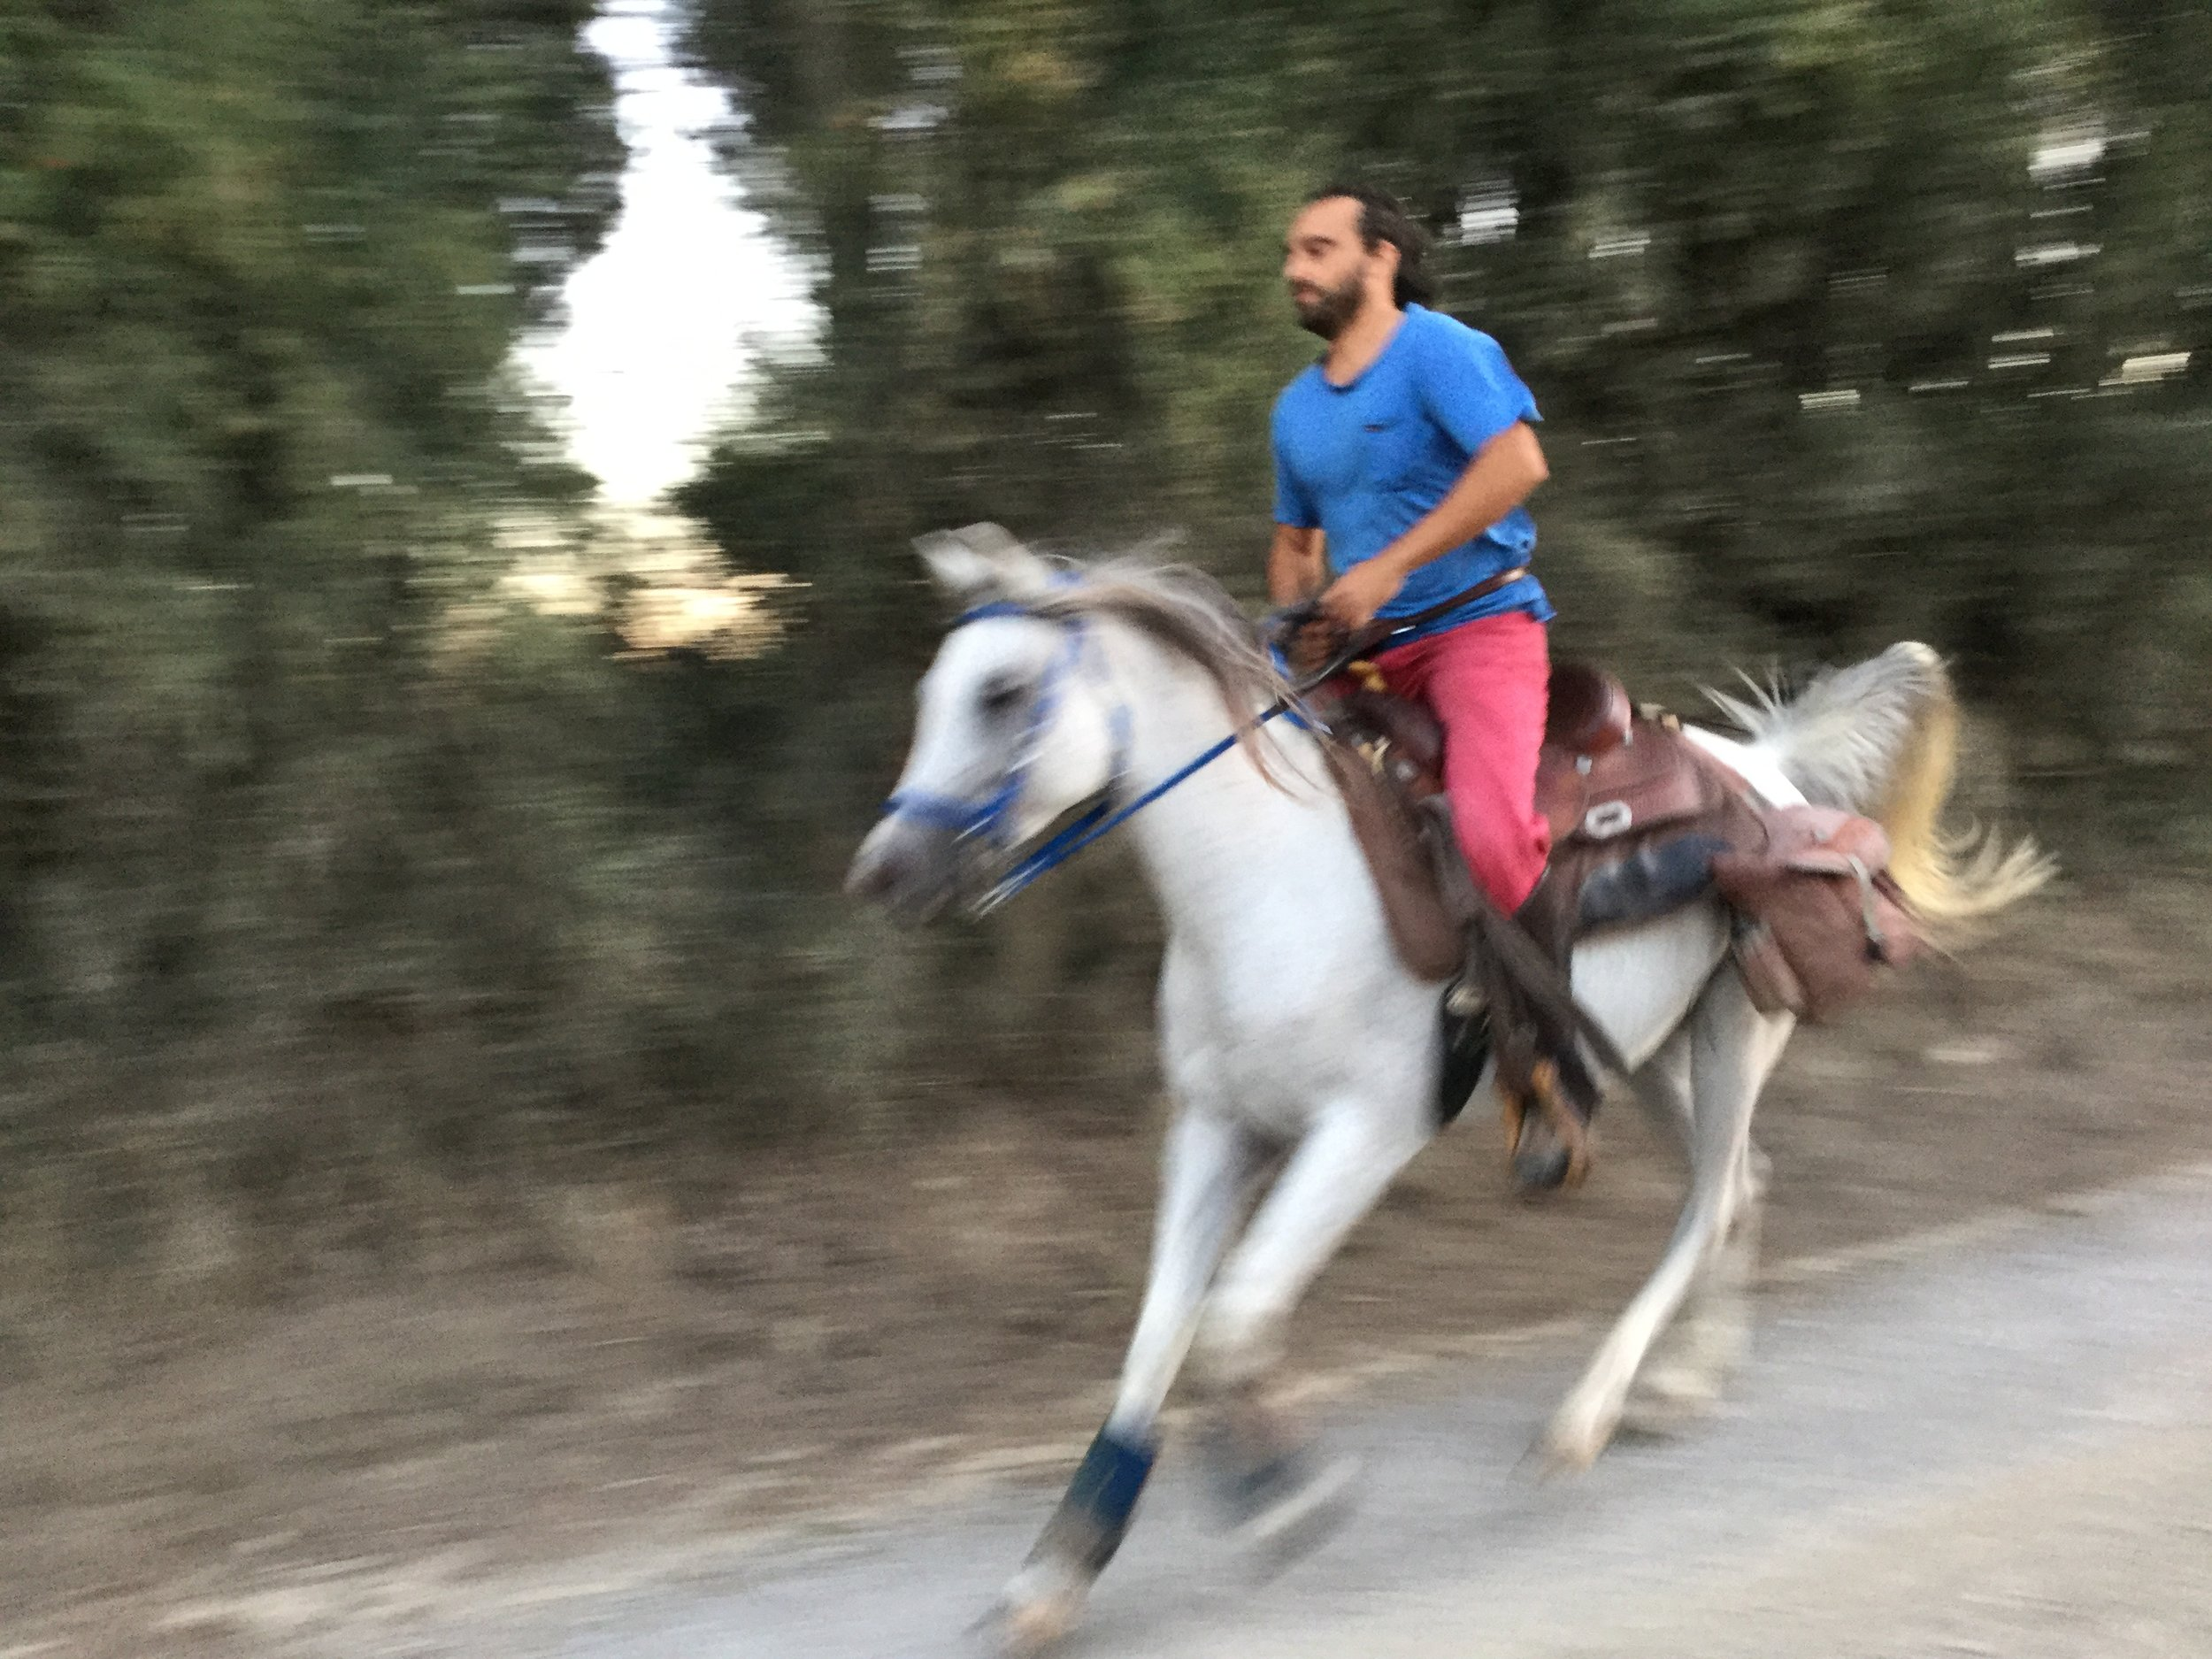 On our last night, we went for an evening walk through the city. On the way back we heard horse hooves and sure enough this handsome Italian dude was galloping home on his mount. We loved seeing that.